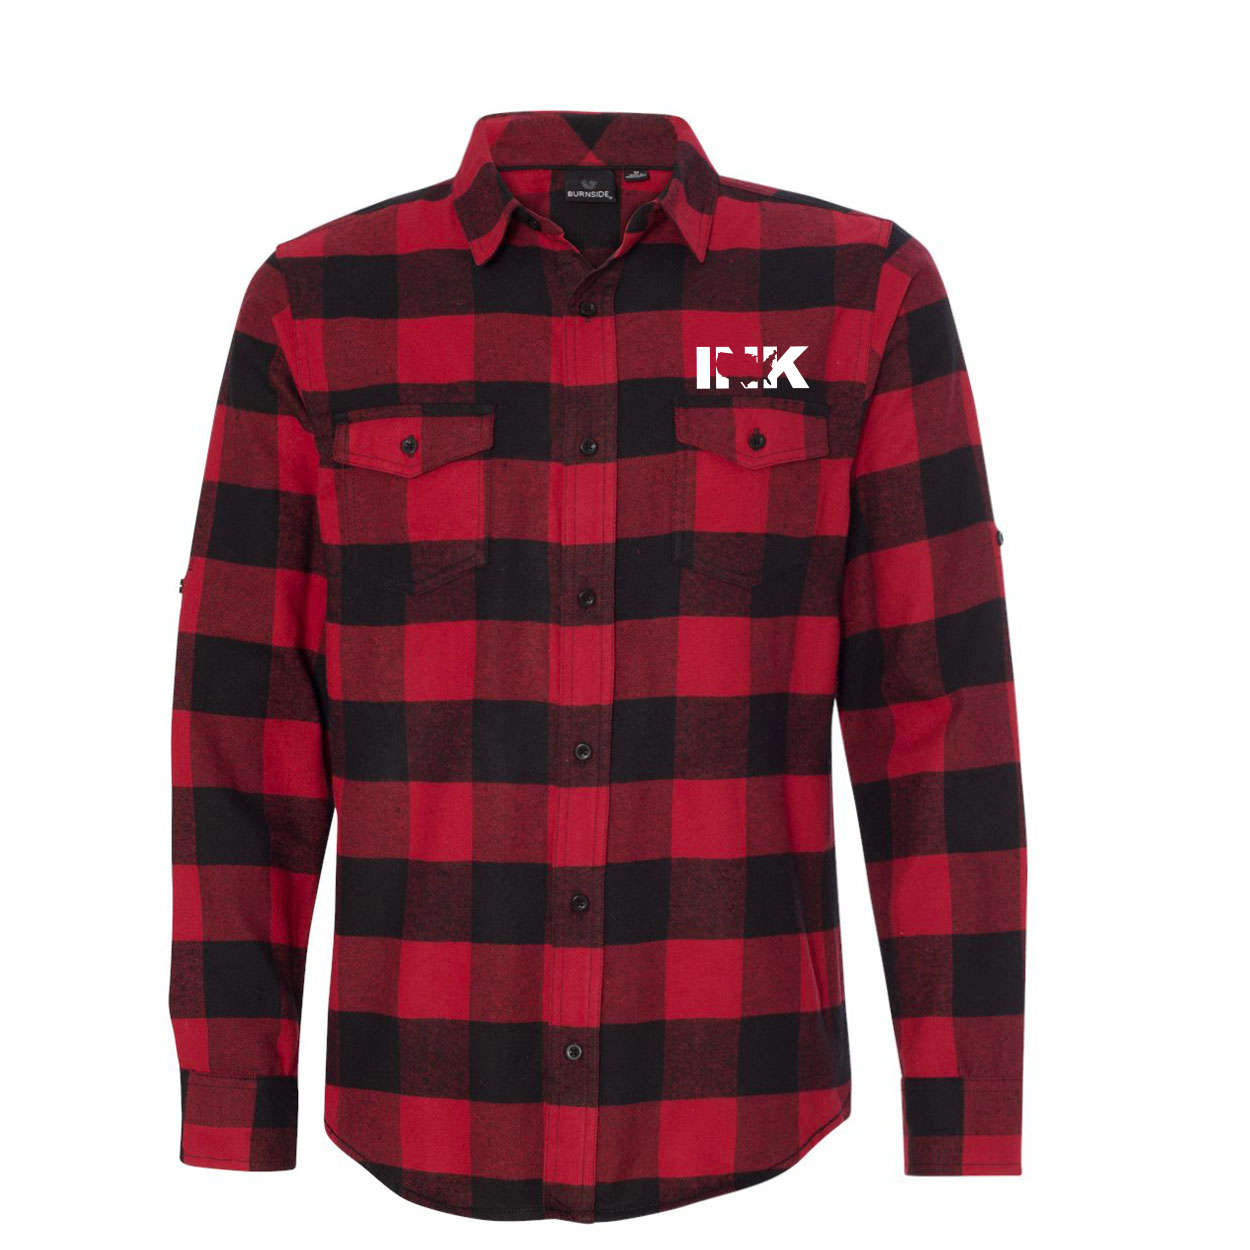 Ink United States Classic Unisex Long Sleeve Flannel Shirt Red/Black Buffalo (White Logo)